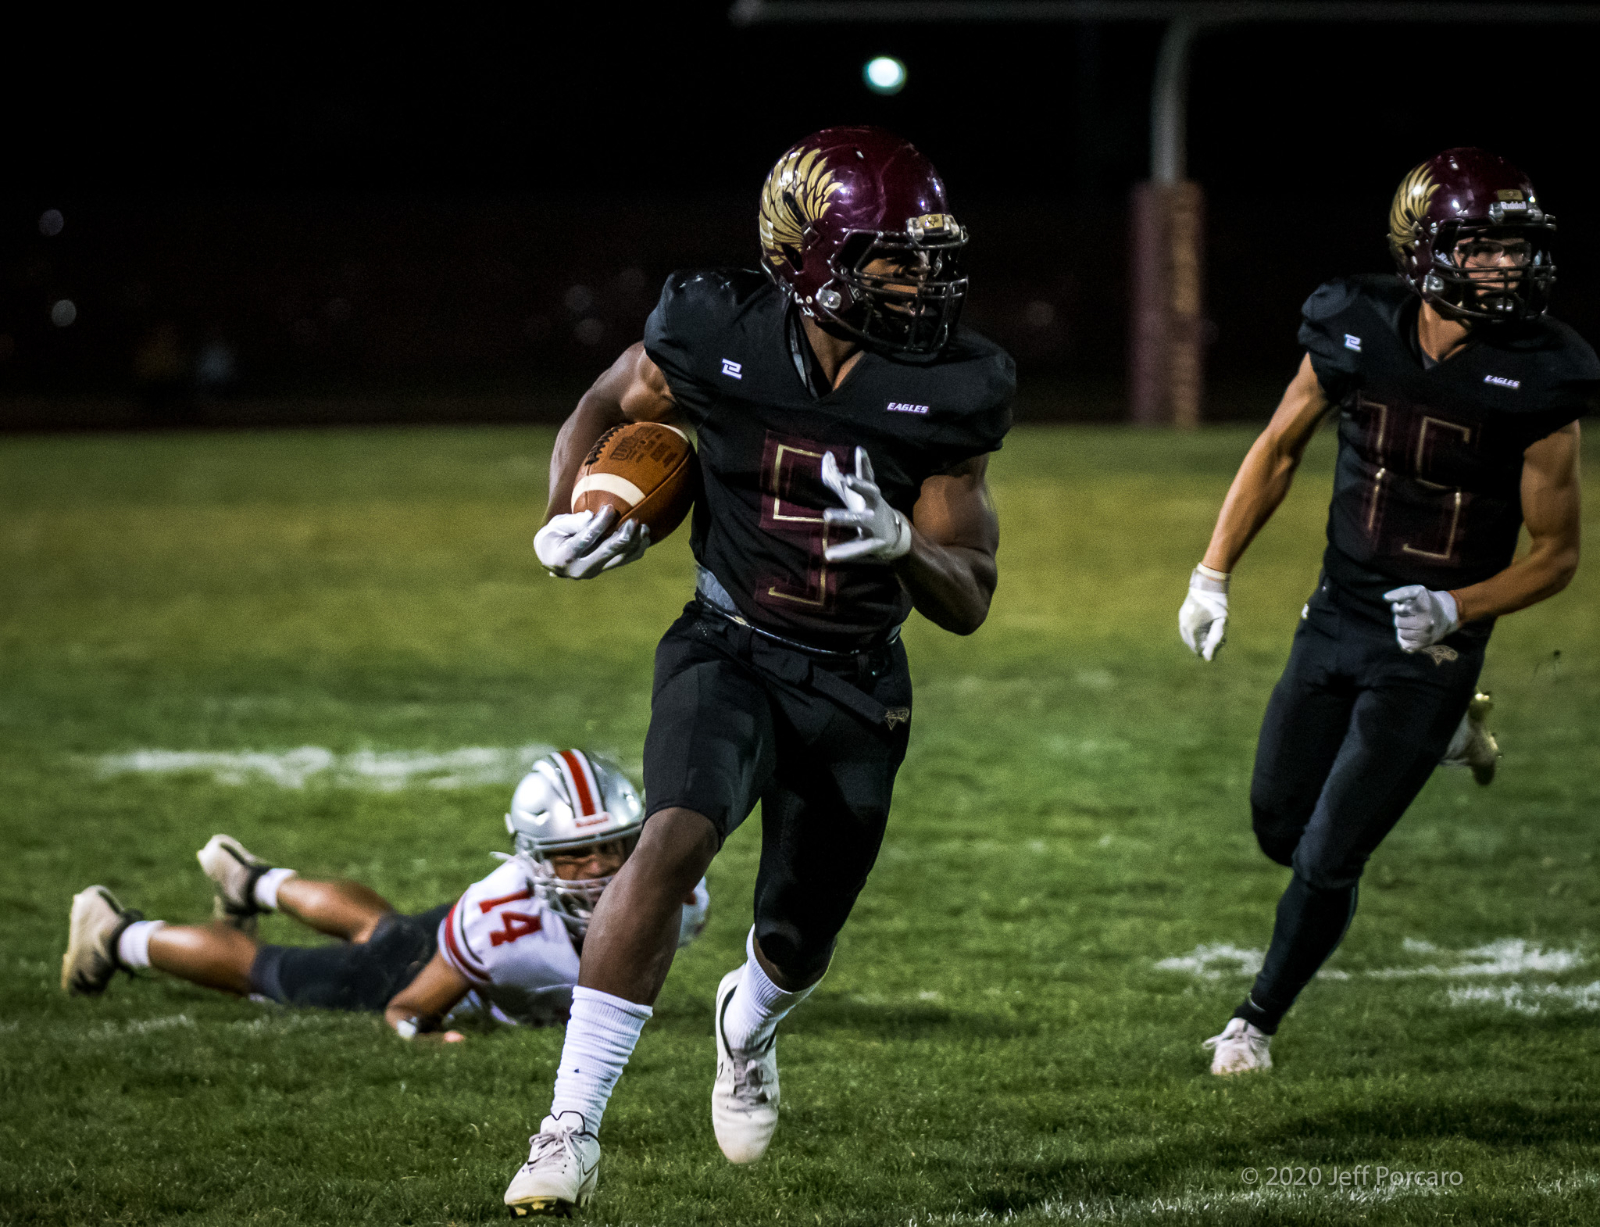 Gallery: Varsity Football v Spanish Fork 2020